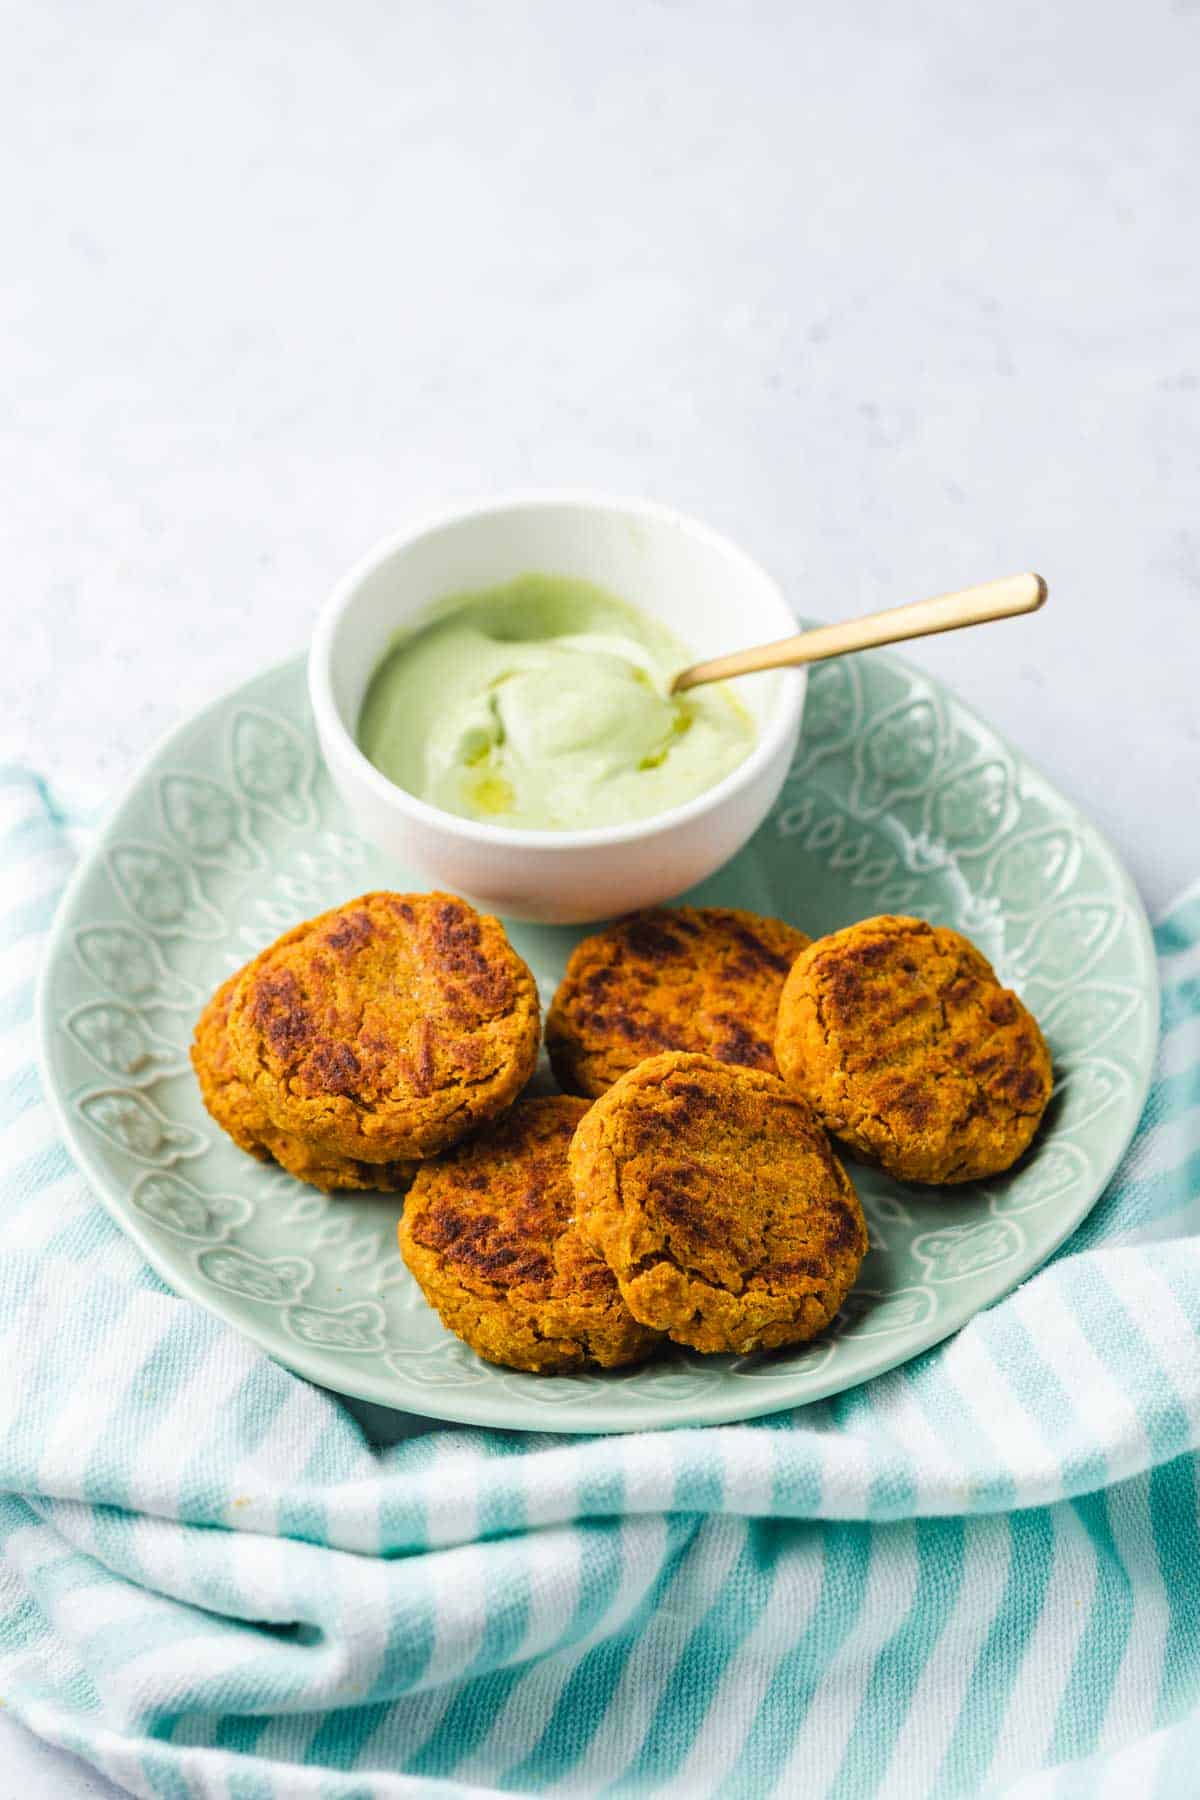 Close up image of sweet potato chickpea patties on a green plate served with avocado sauce on the side.